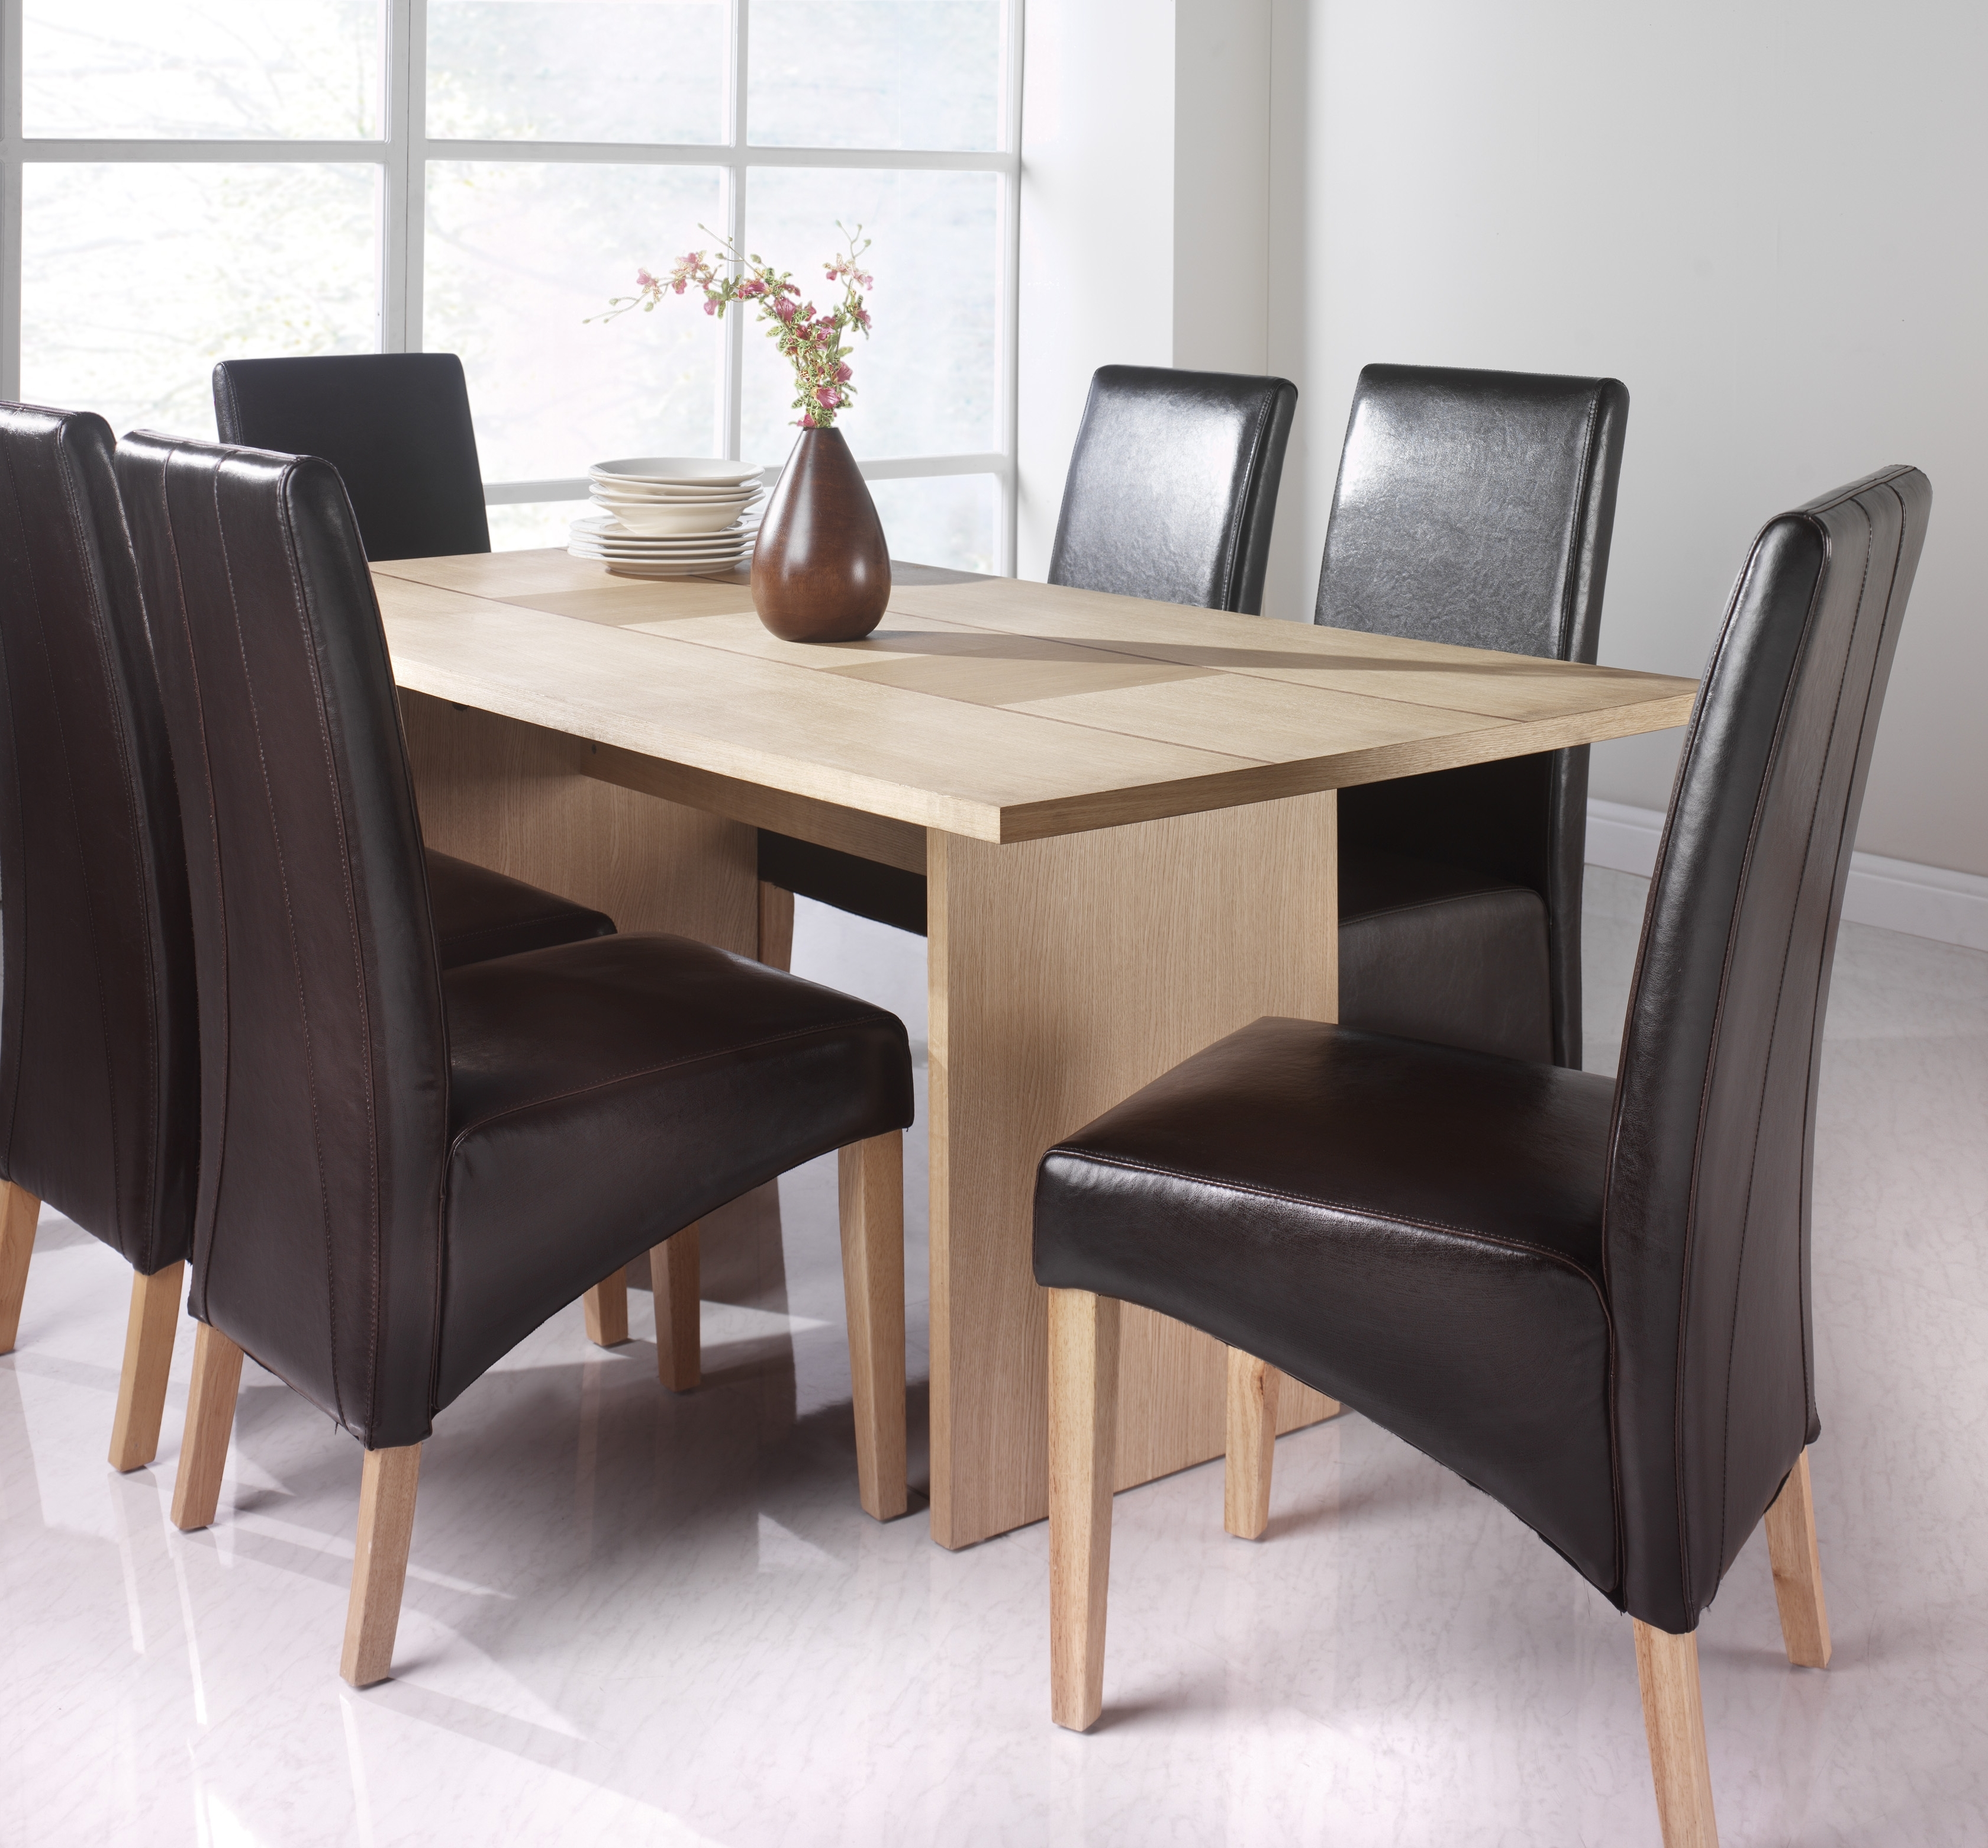 Dining Tables At Aintree Liquidation Centre With Regard To Most Up To Date Oak Dining Suites (View 9 of 25)